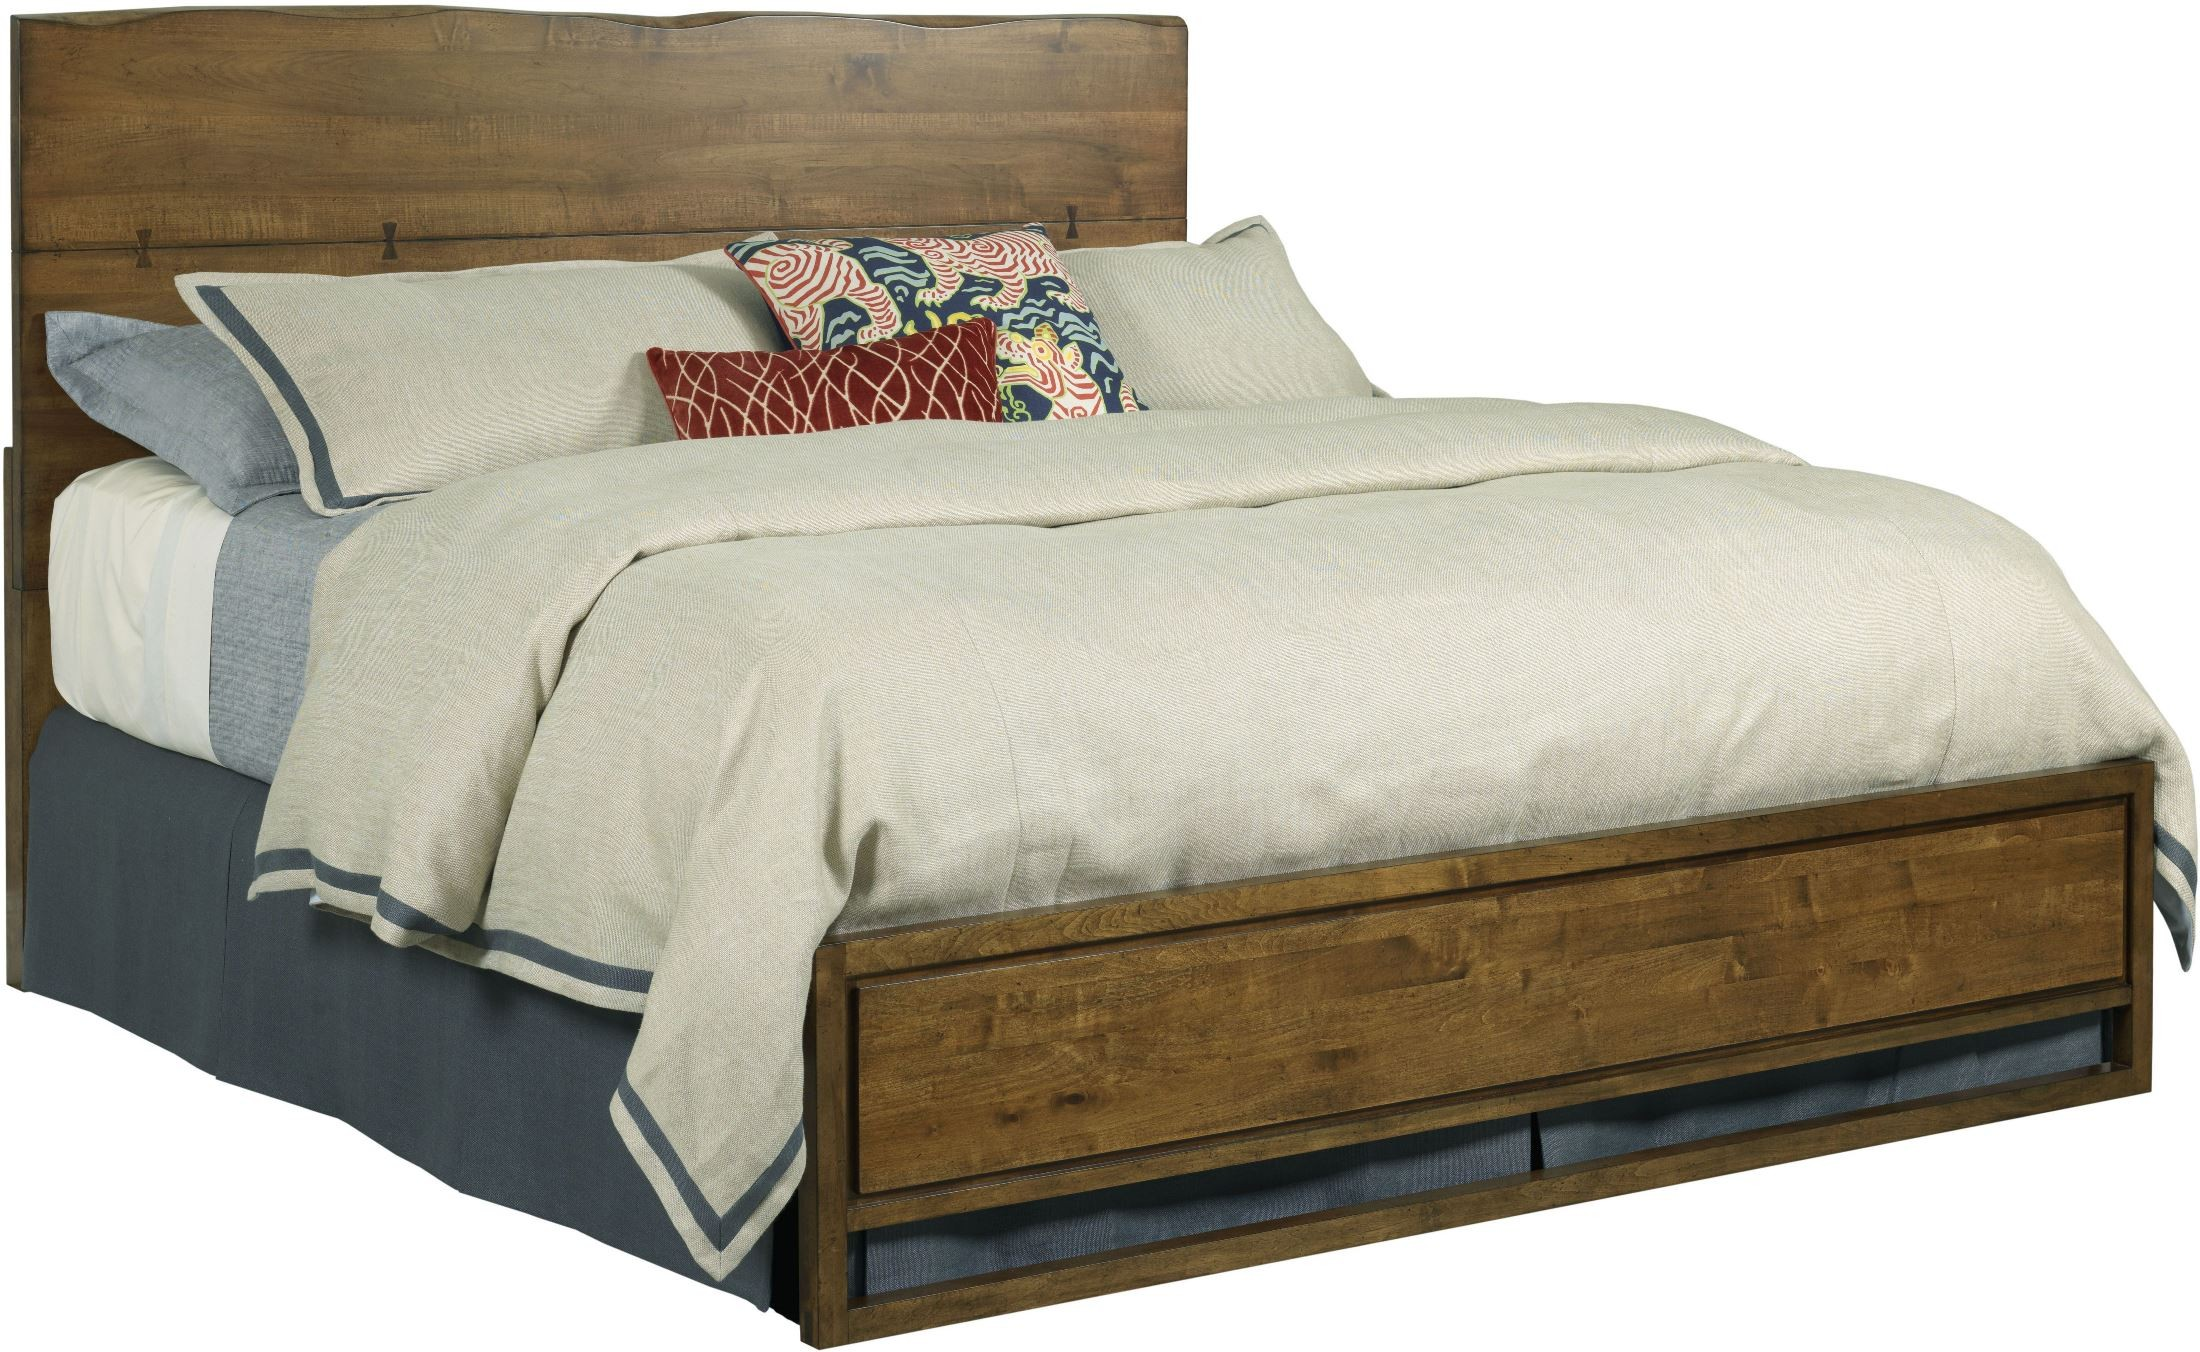 Traverse Brown Craftsman Queen Platform Bed From Kincaid